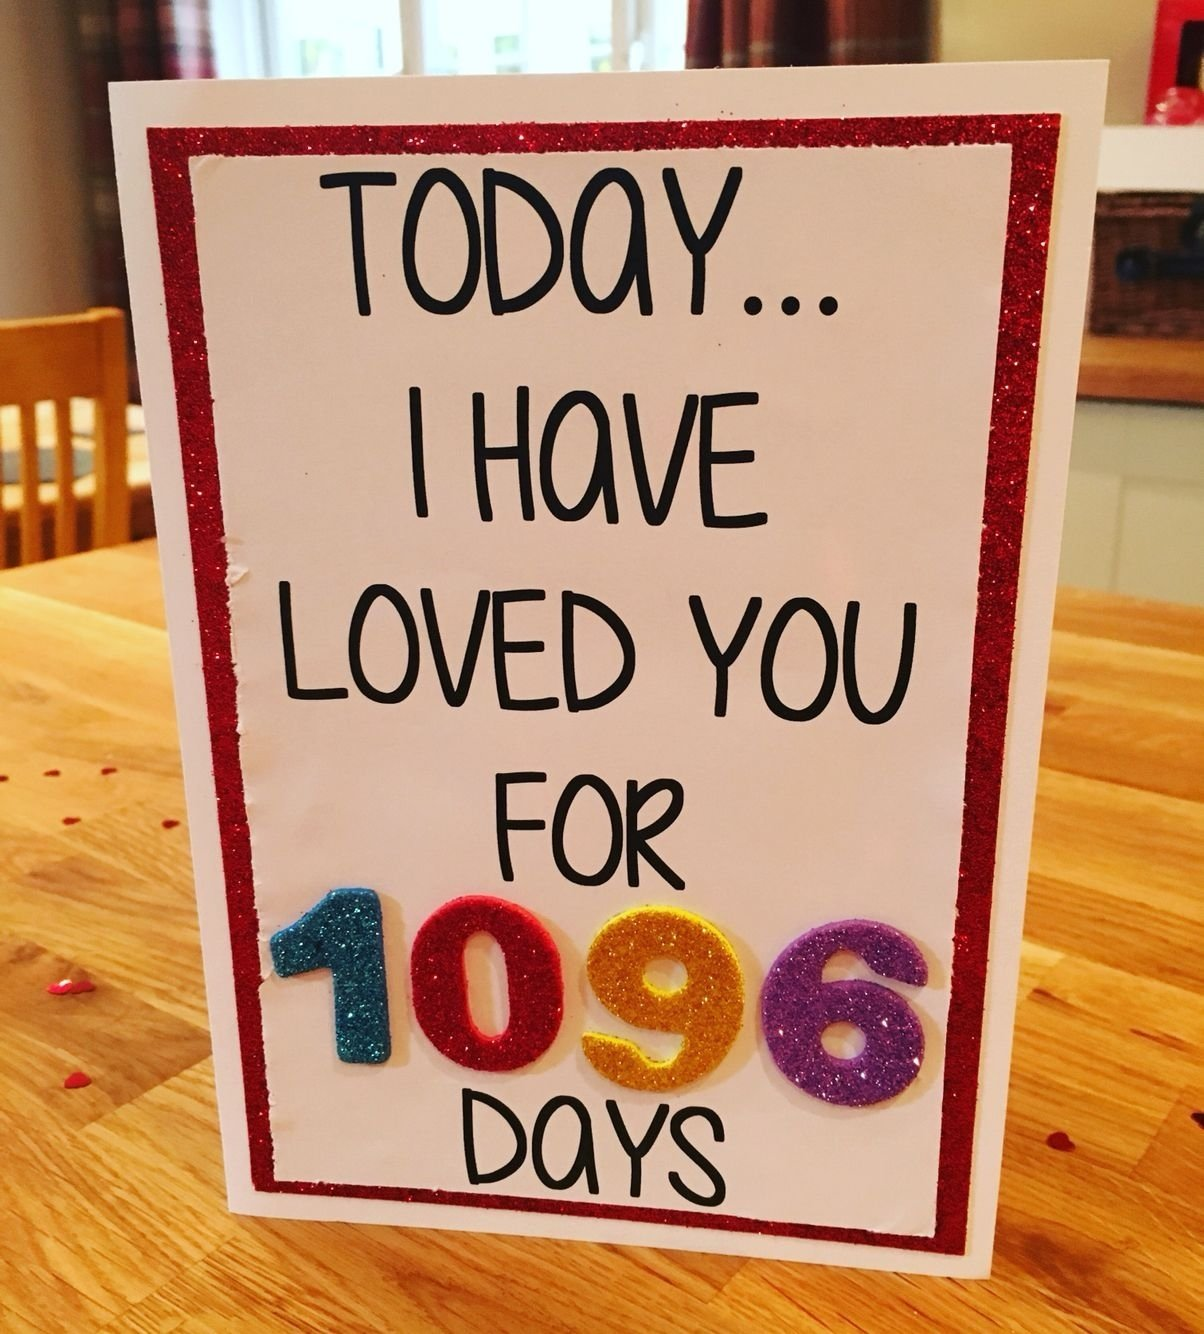 10 Wonderful 3 Year Wedding Anniversary Ideas 3 year anniversary card today i have loved you for 1096 days x 5 2020